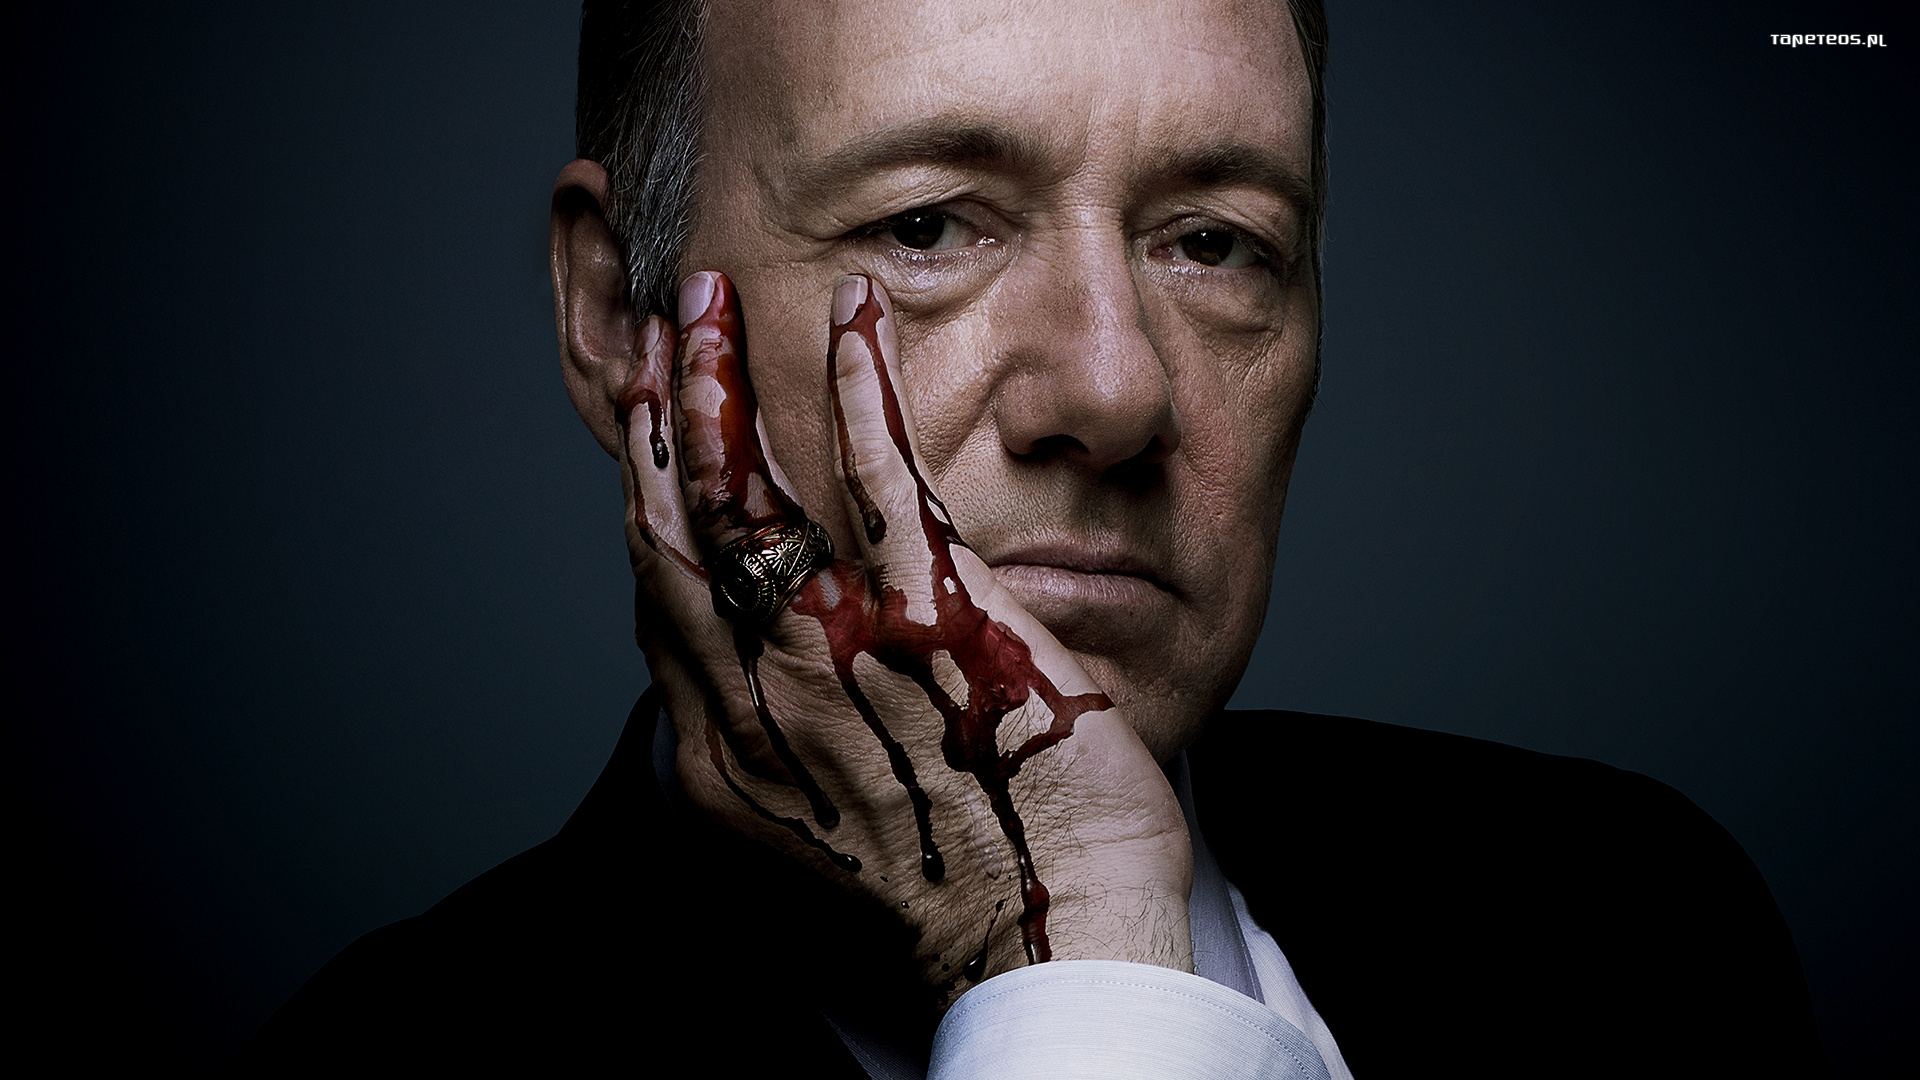 House Of Cards 009 Kevin Spacey jako Francis Underwood